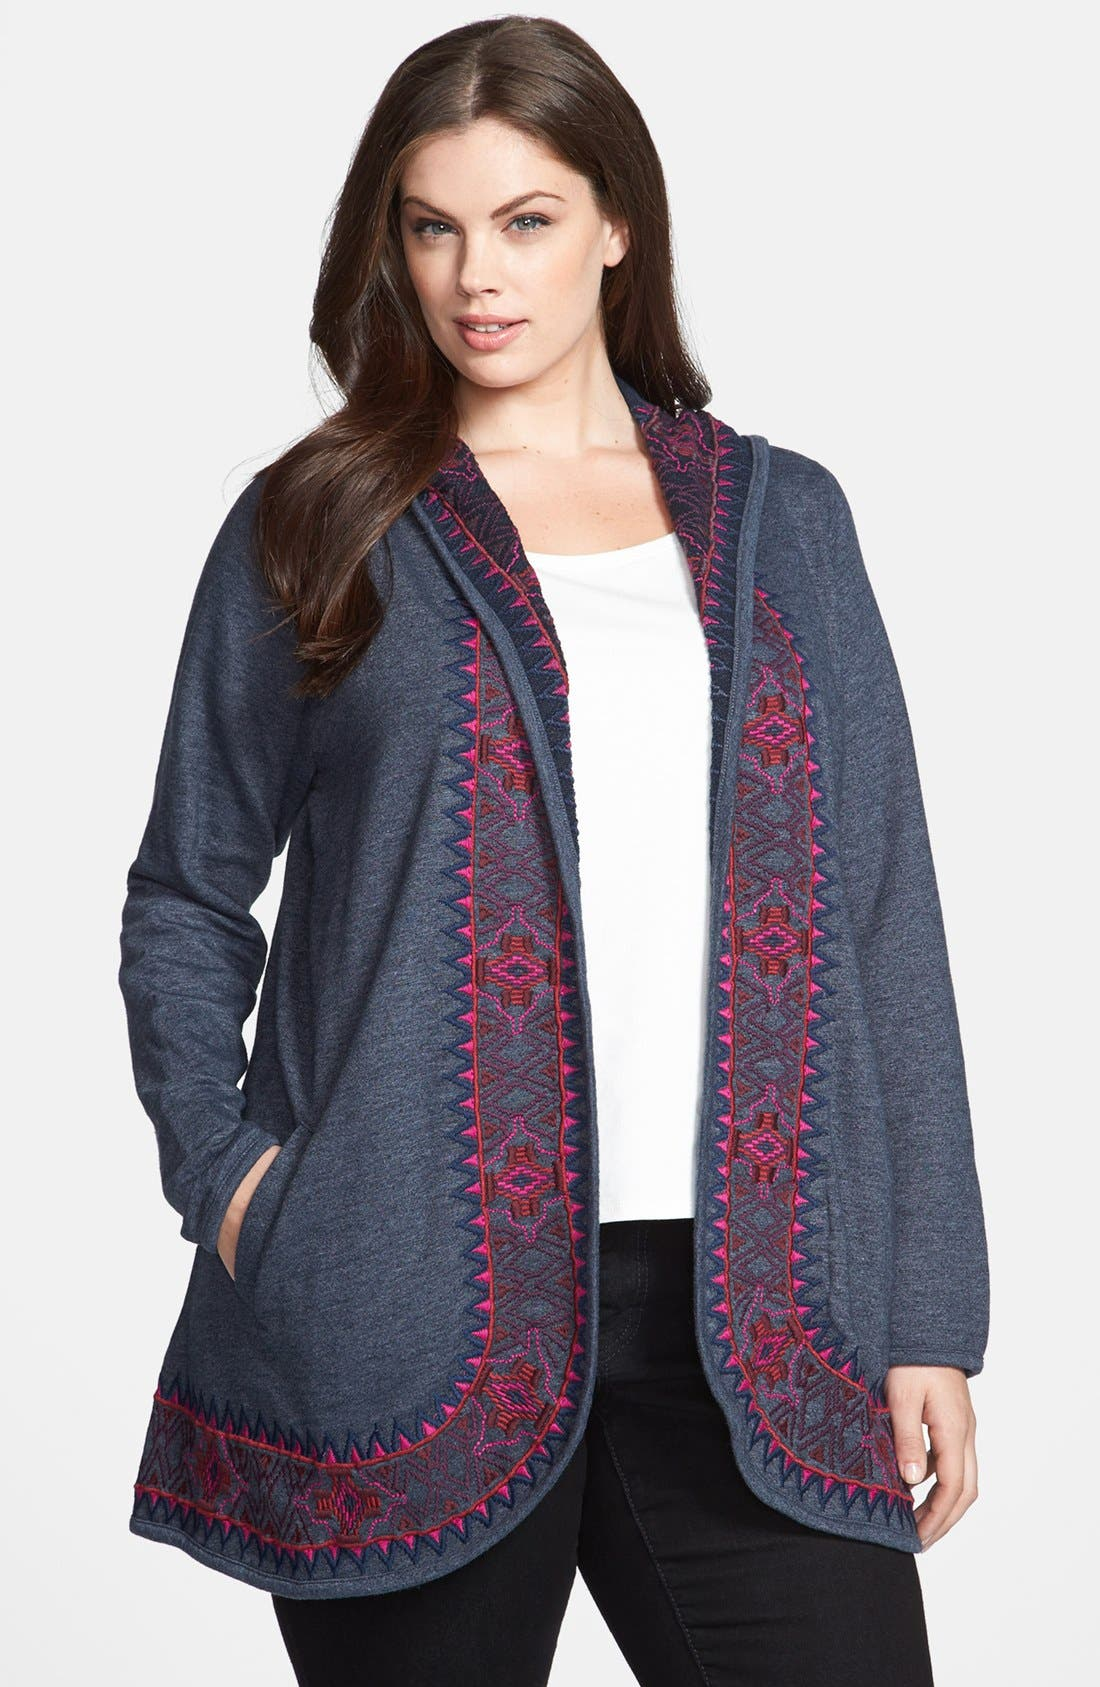 Alternate Image 1 Selected - Lucky Brand 'Moroccan' Embroidered Cardigan (Plus Size)